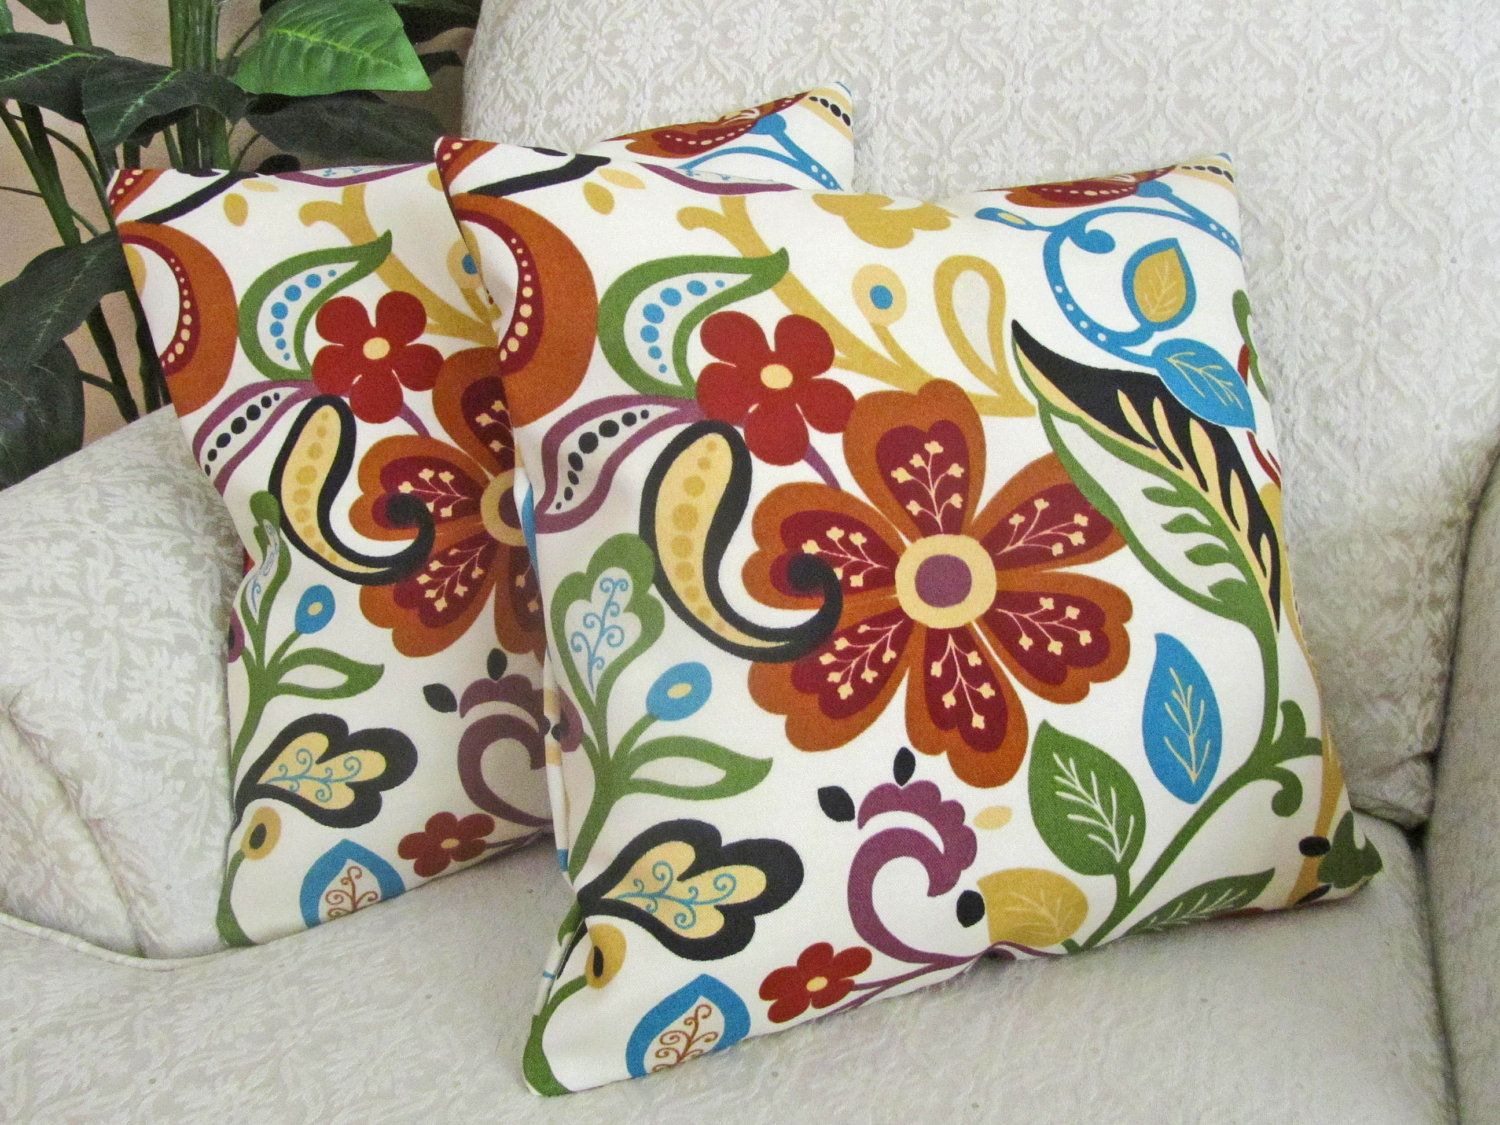 Decorative Sofa Pillows Innovation Puzzle Luxe Bed Floral Throw Pillow Cover Cushion